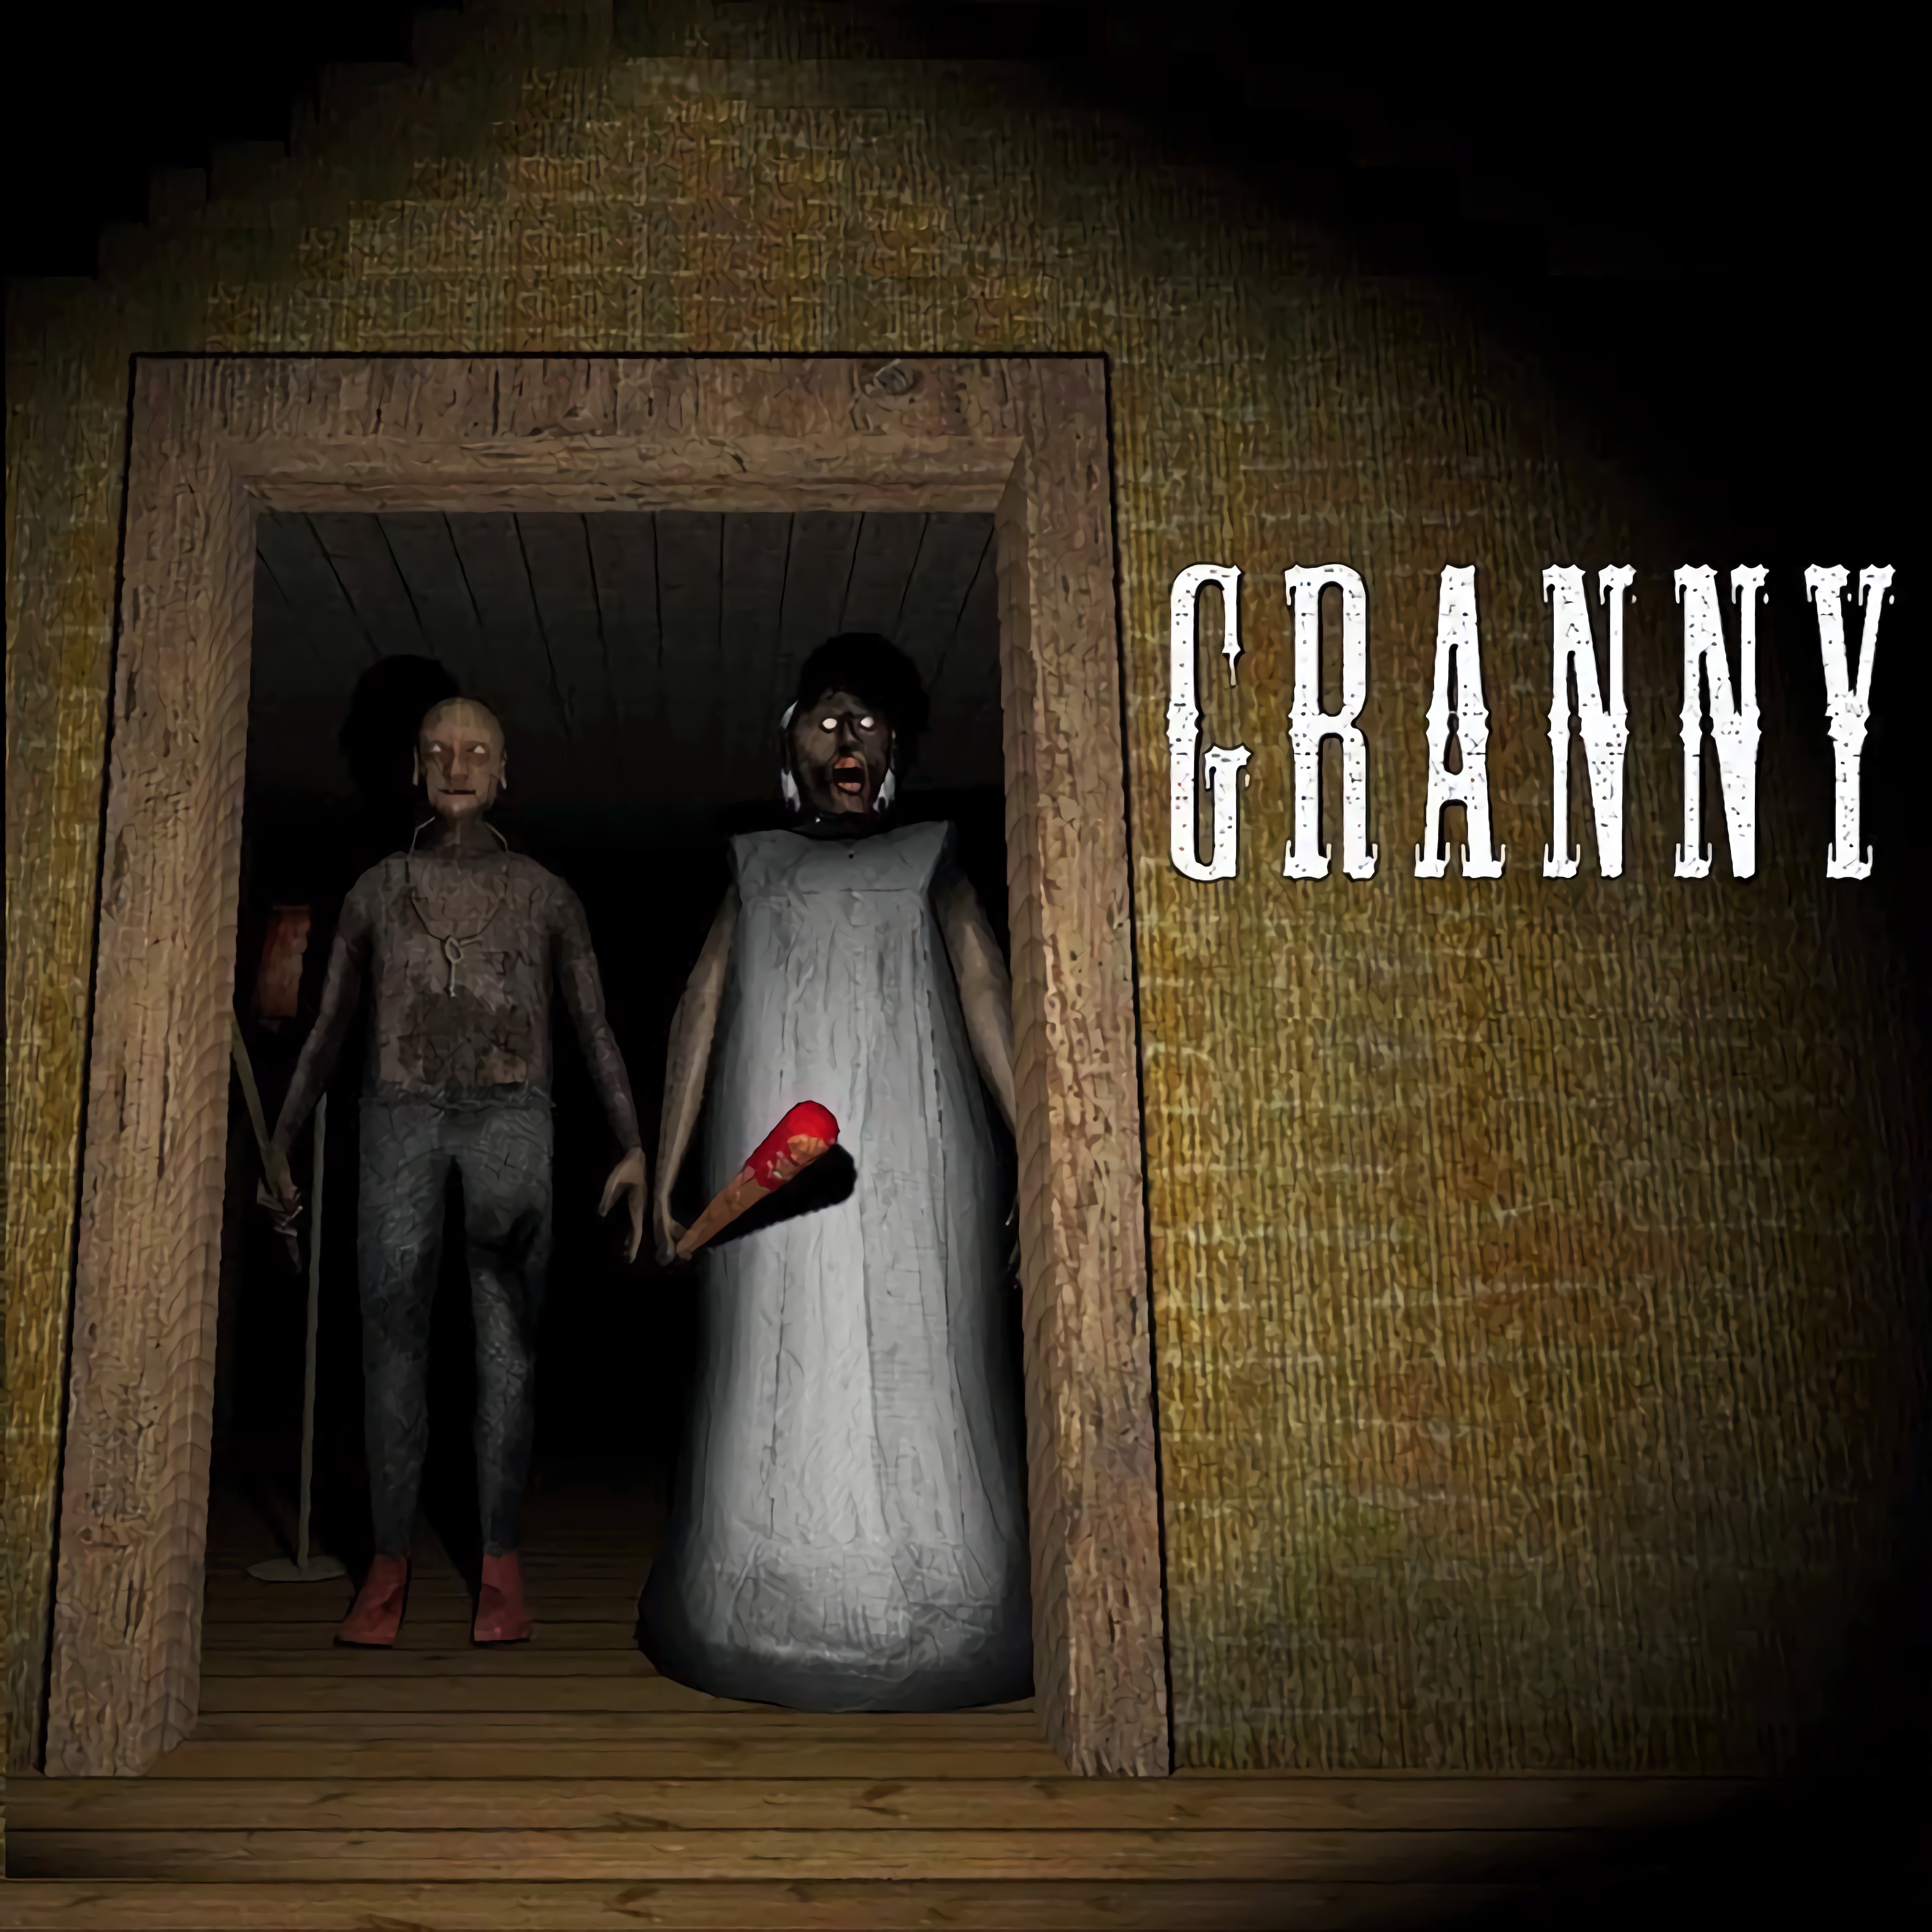 Creepy Granny Scream: Scary Freddy